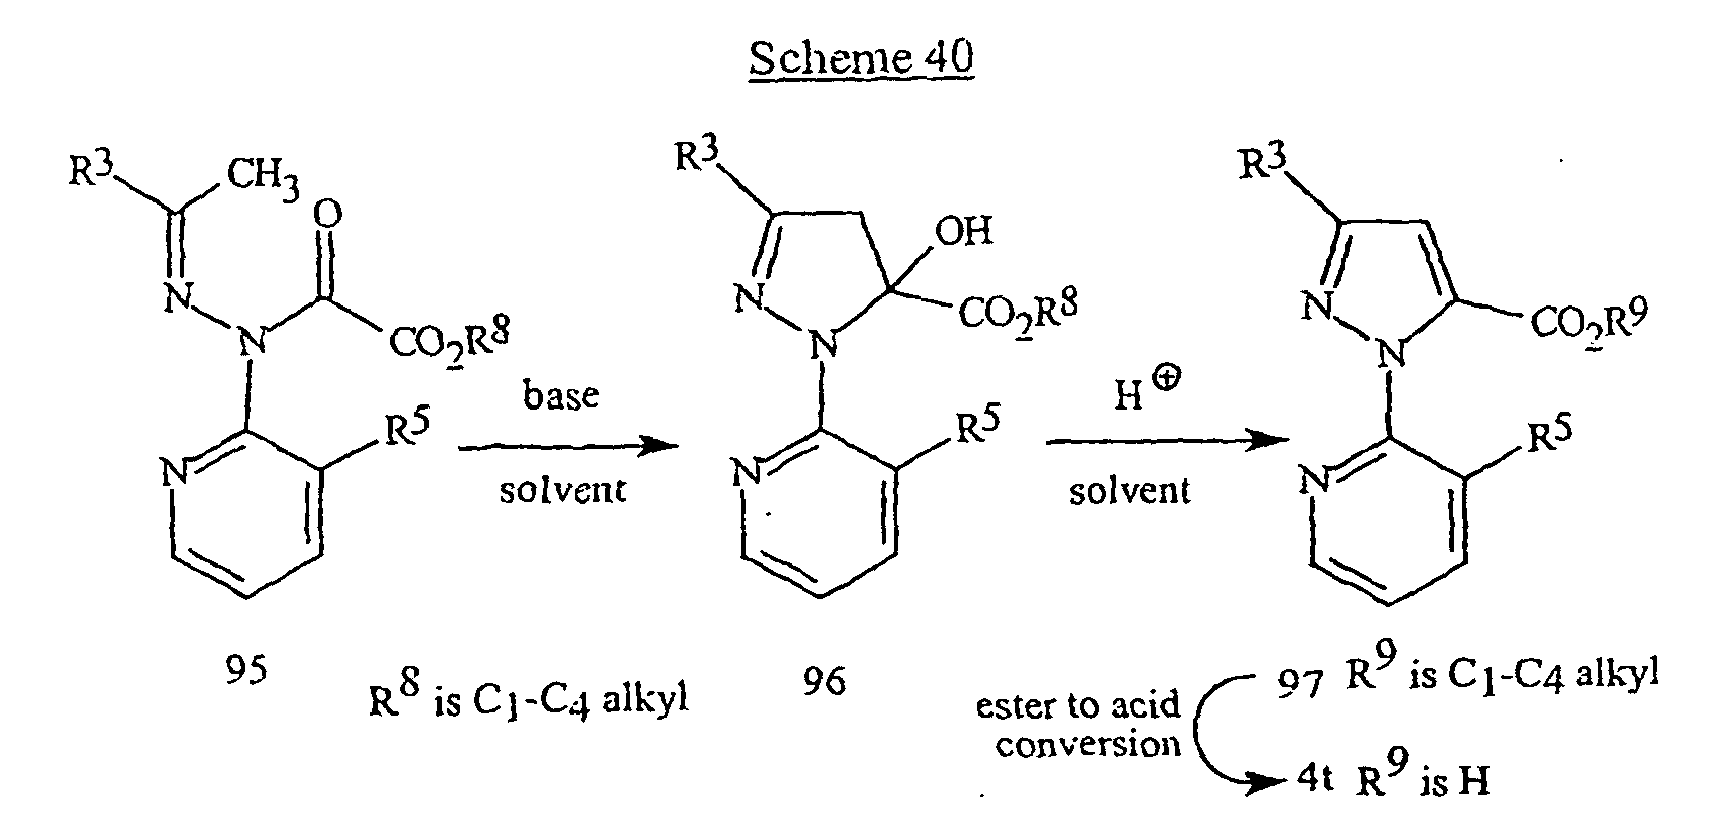 hight resolution of  compound of formula 95 wherein r 8 is c 1 c 4 alkyl with a suitable base in a suitable organic solvent affords the cyclized product of formula 96 after